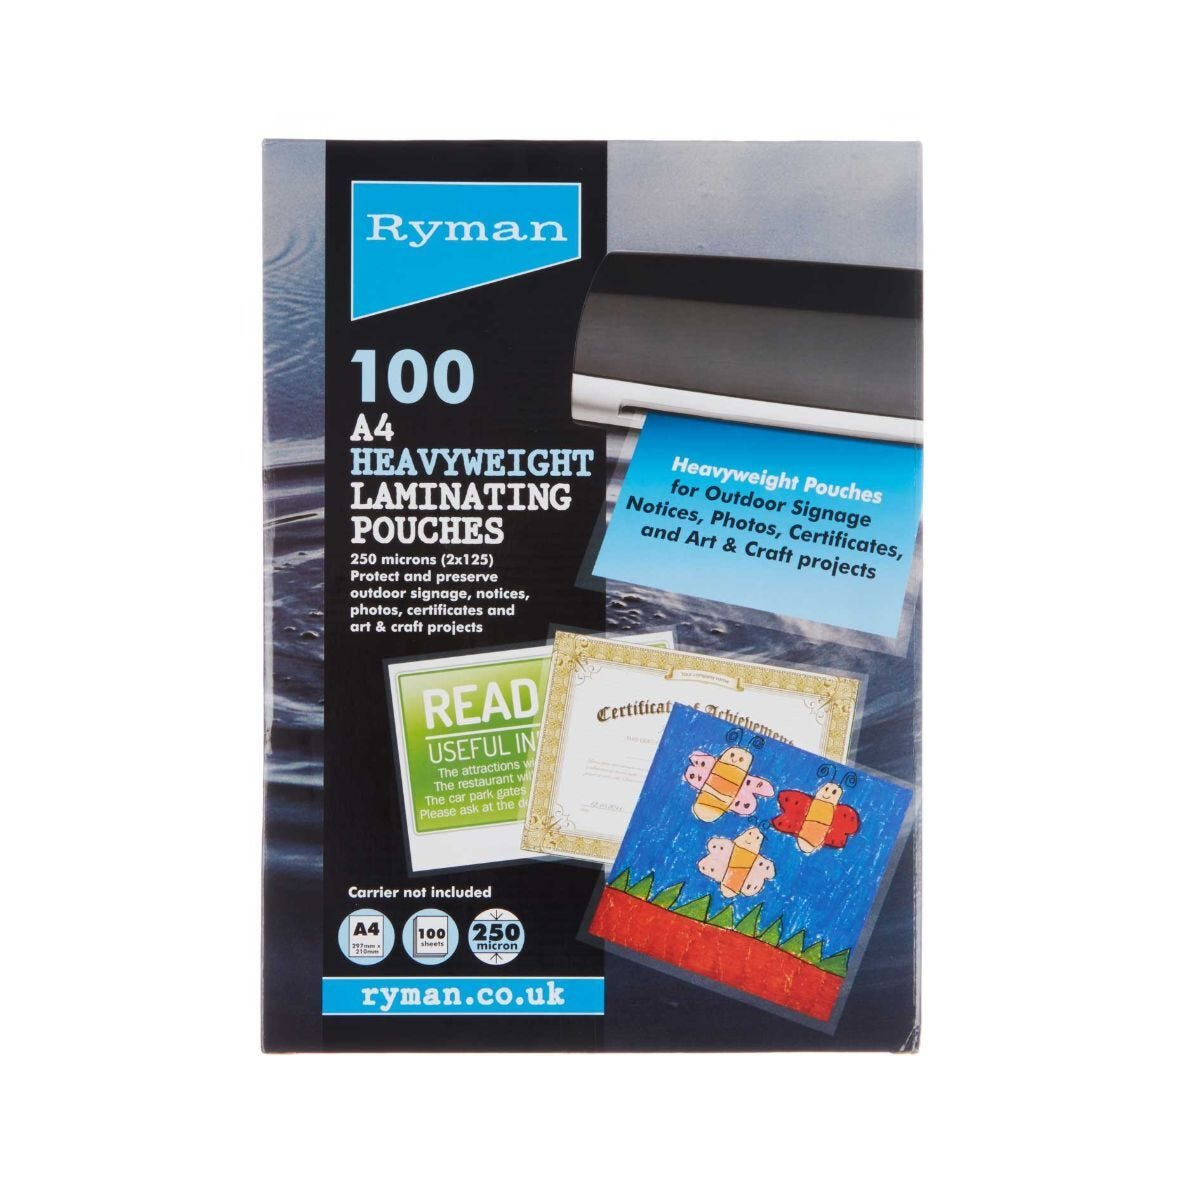 Ryman Laminating Pouches A4 250 Micron Pack of 100